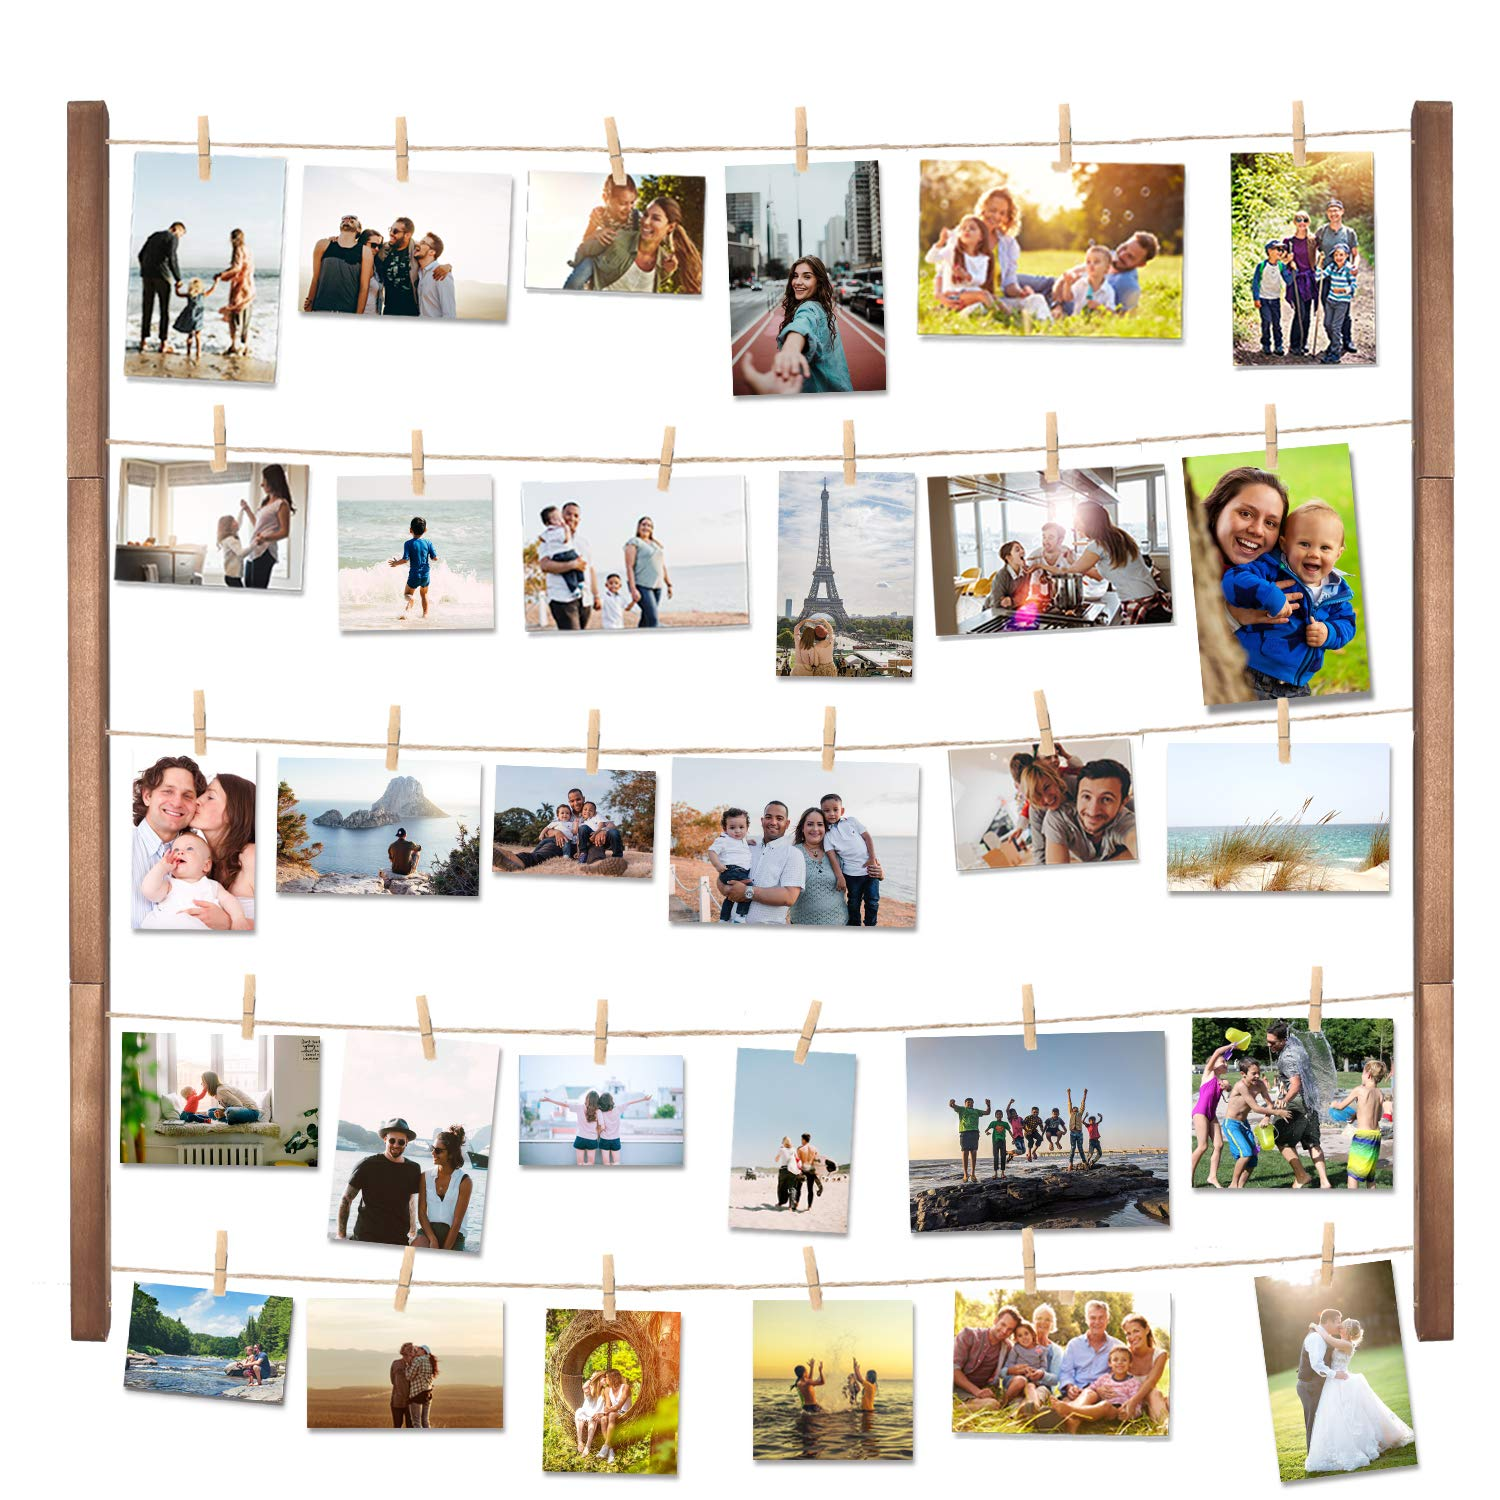 DIY Wood Picture Frames Collage for Hanging Wall Decor, VENCIPA Multi Photo Display Pictures Organizer with 30 Clips, 28'' X 22'' inch Vertical or Horizontal Display by Vencipa